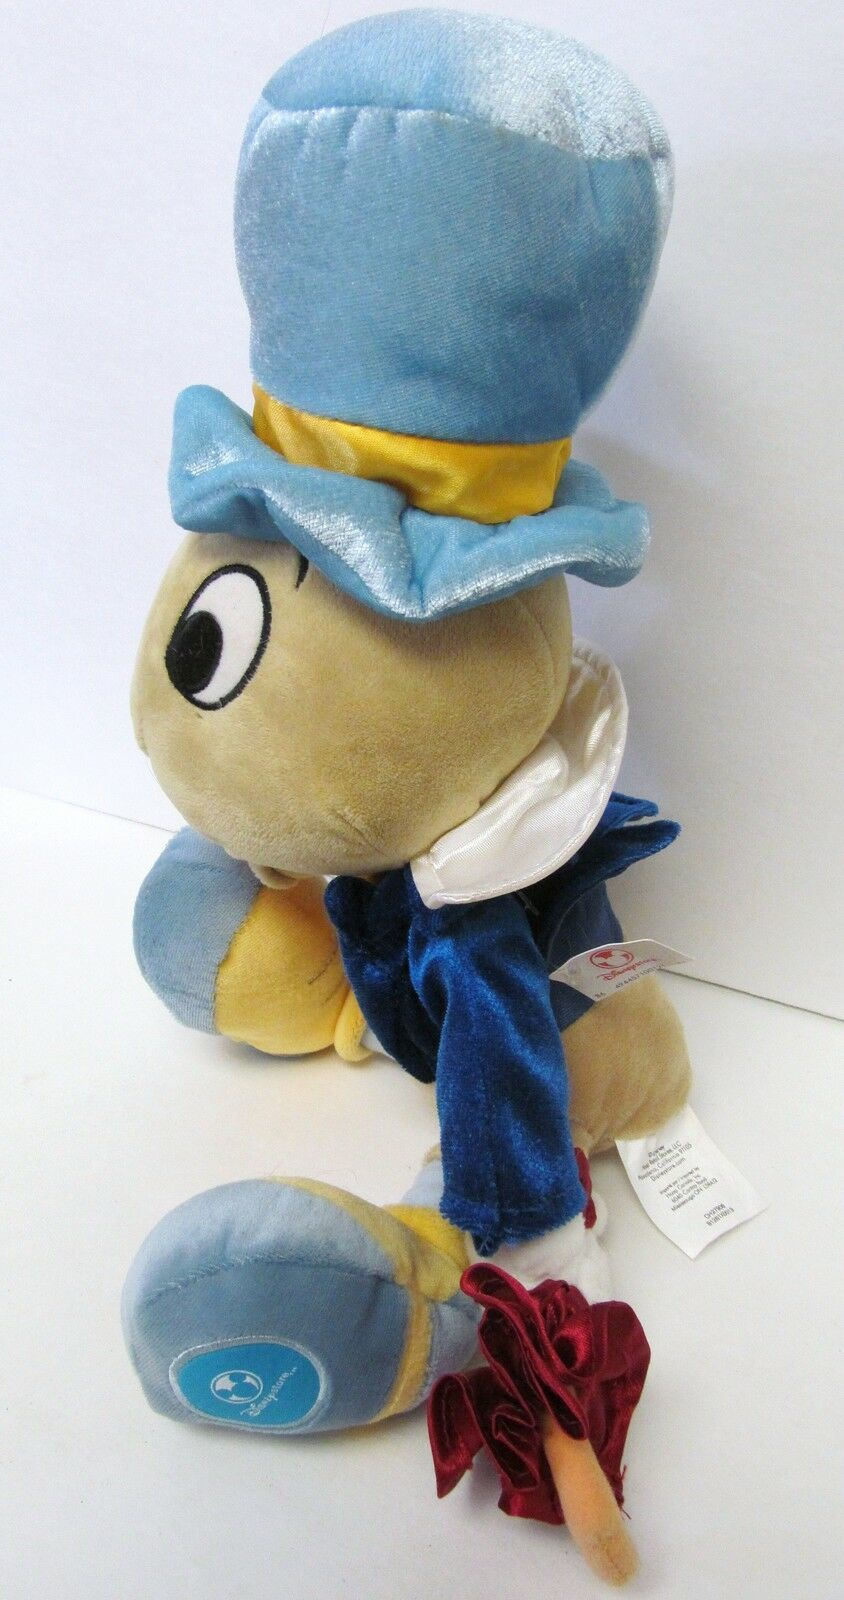 "DISNEY STORE CORE JIMINY CRICKET PLUSH DOLL TOY 15"" WPARTIAL HANGTAG & TUSH TAG"